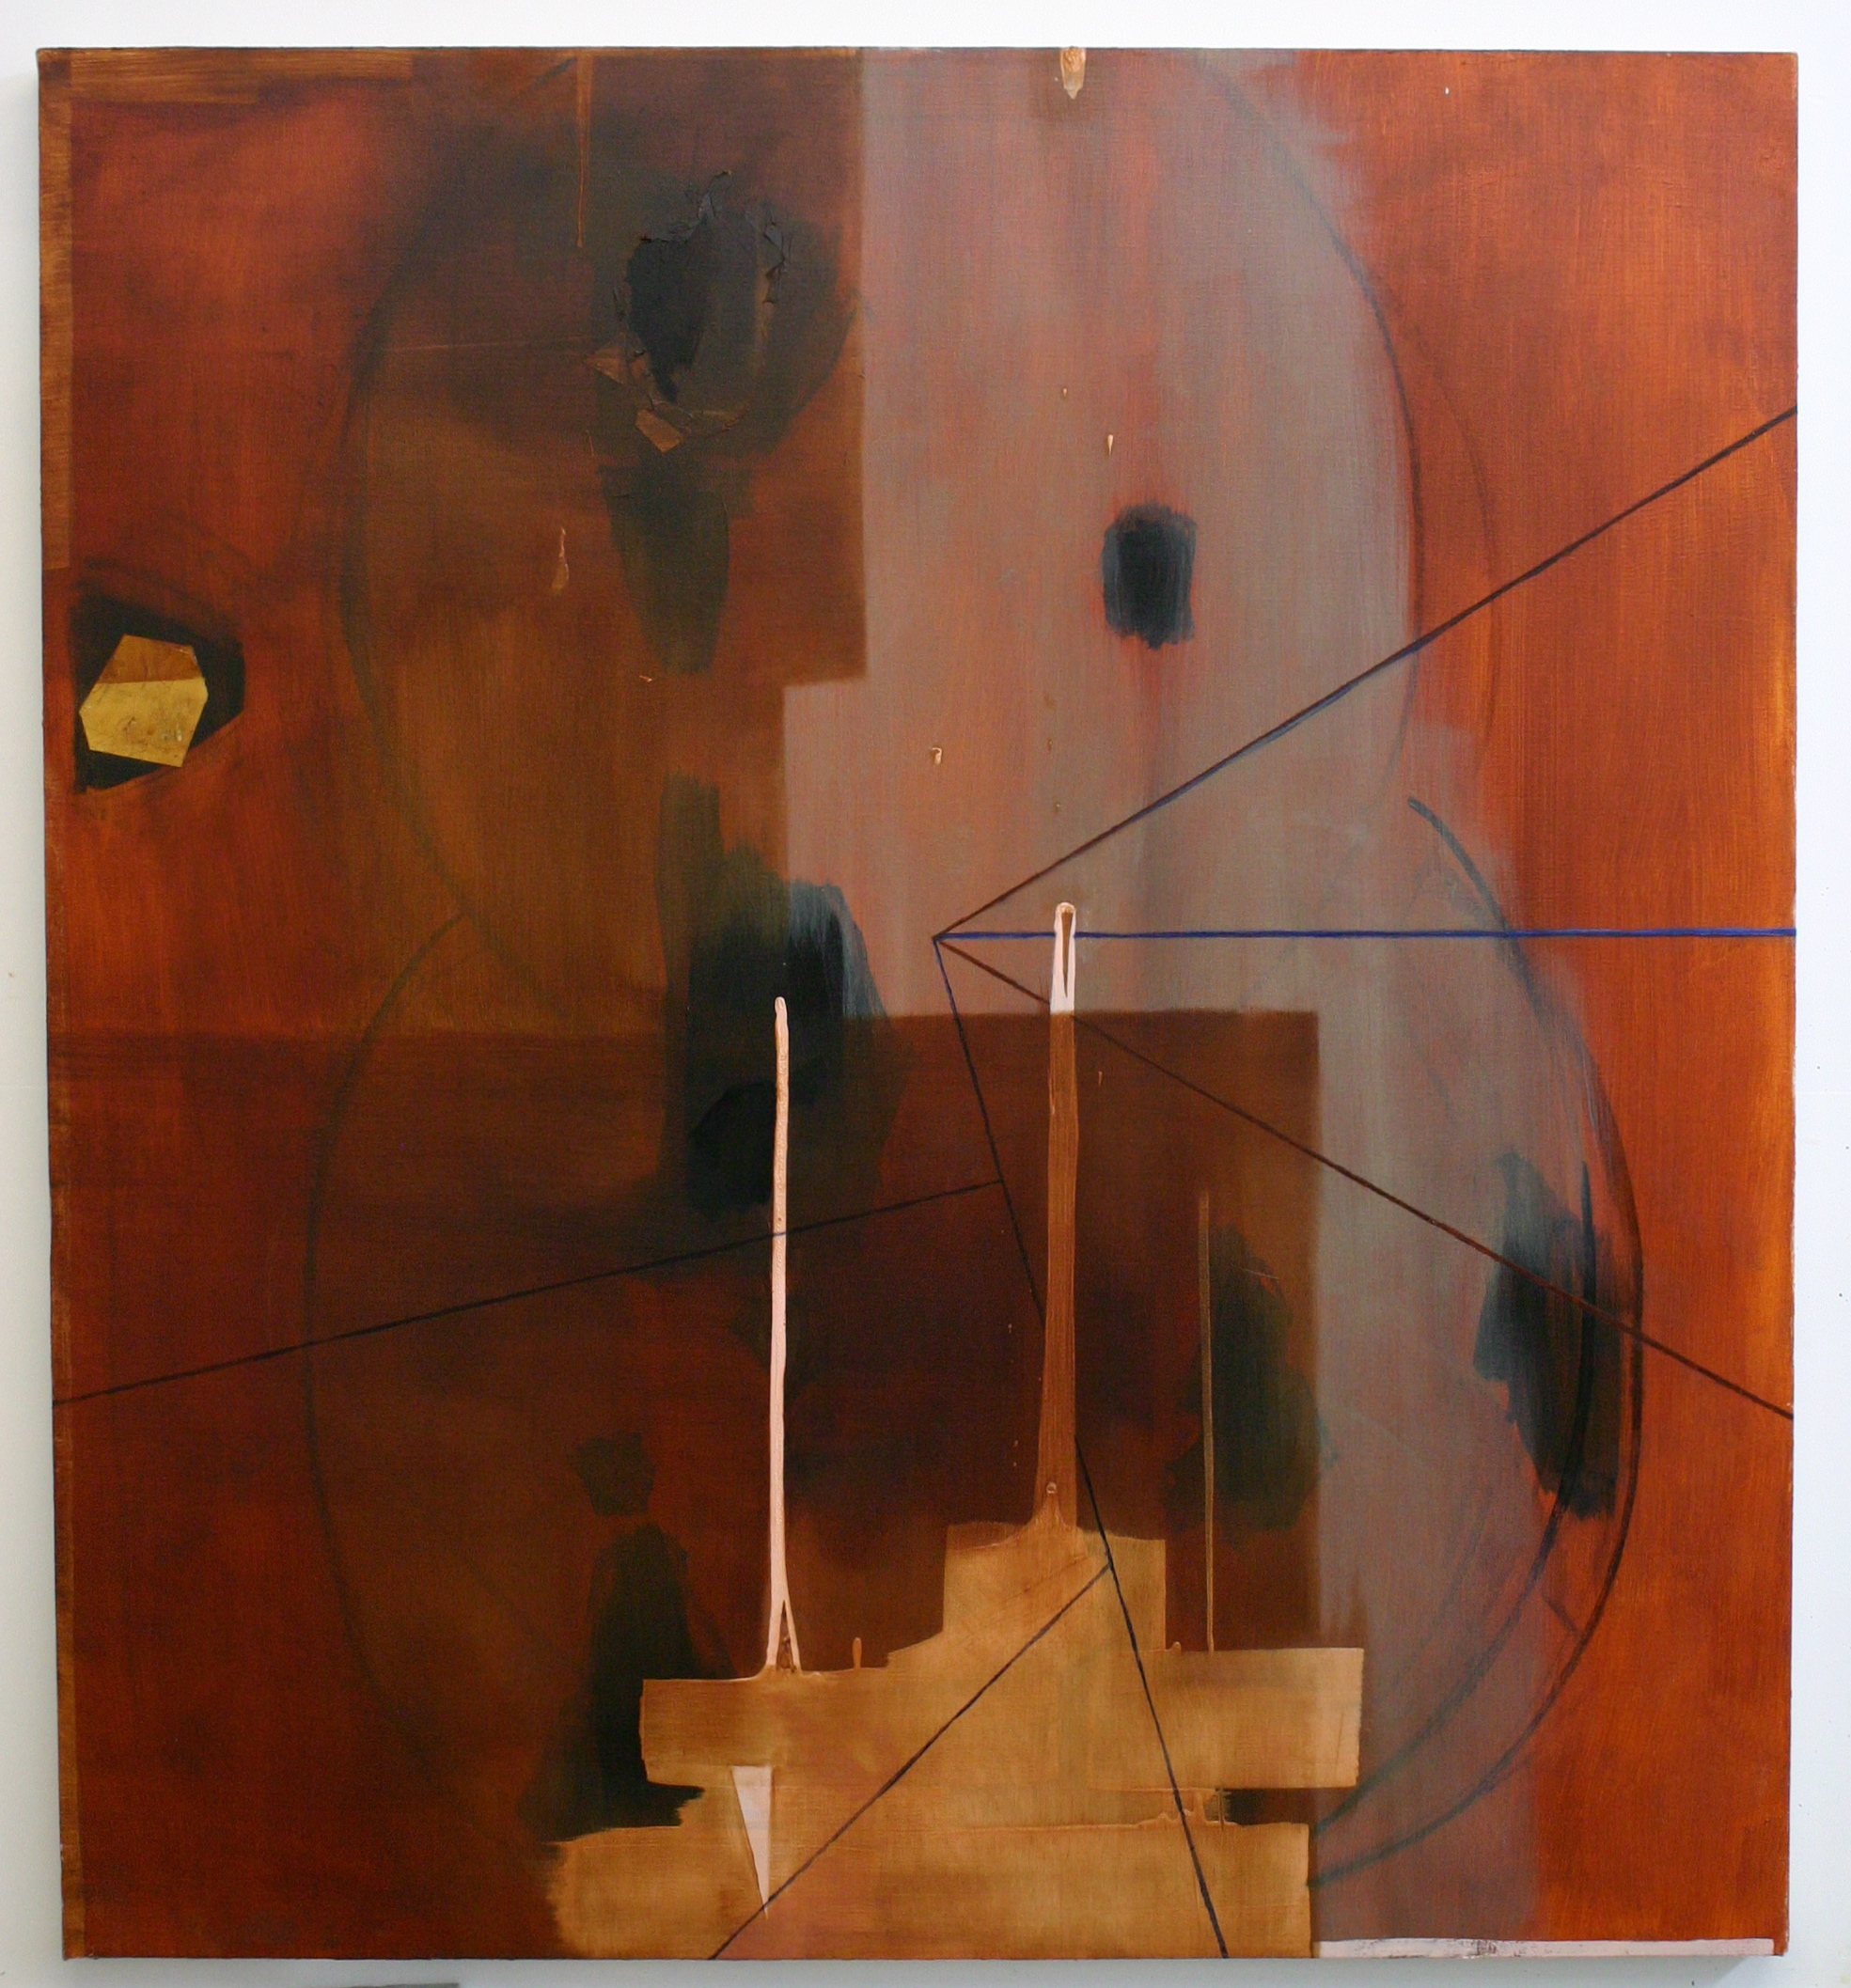 Magellan's Demise, 2012, oil on canvas, 46 x 42 inches